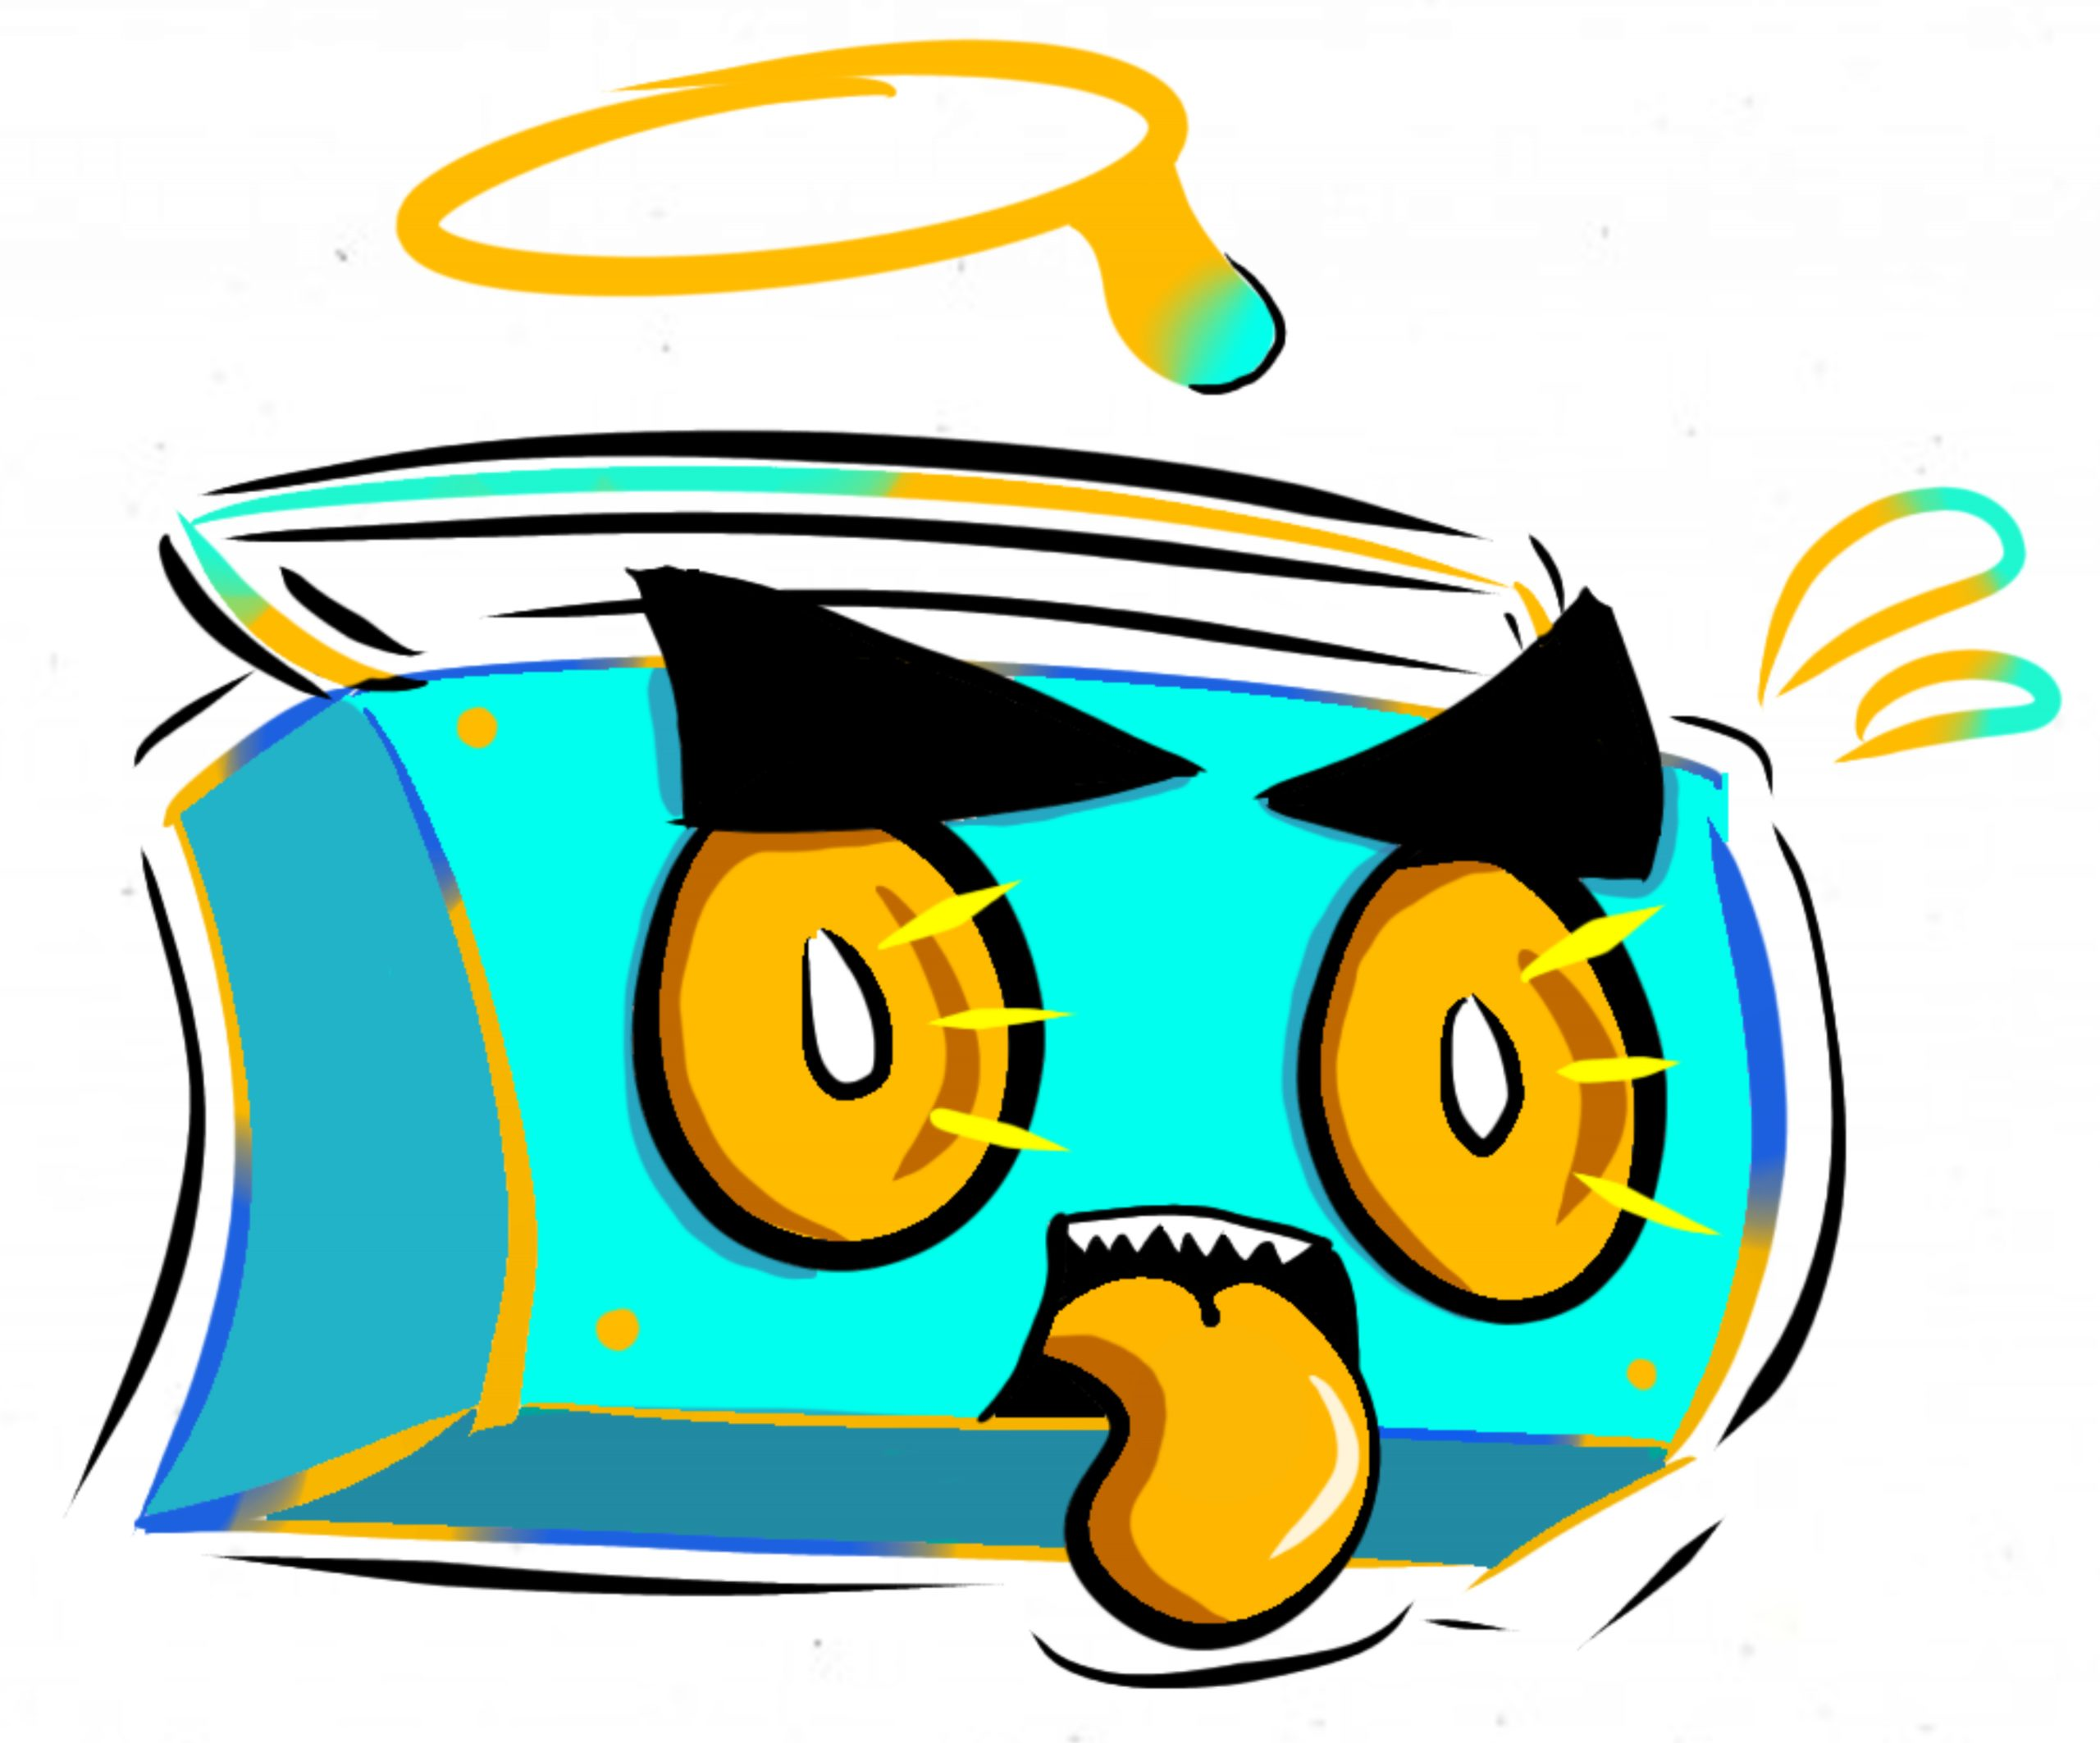 BooM BOX,Tyrese Russell <br> 5120 x 4249 px<br> Digital Art<br>